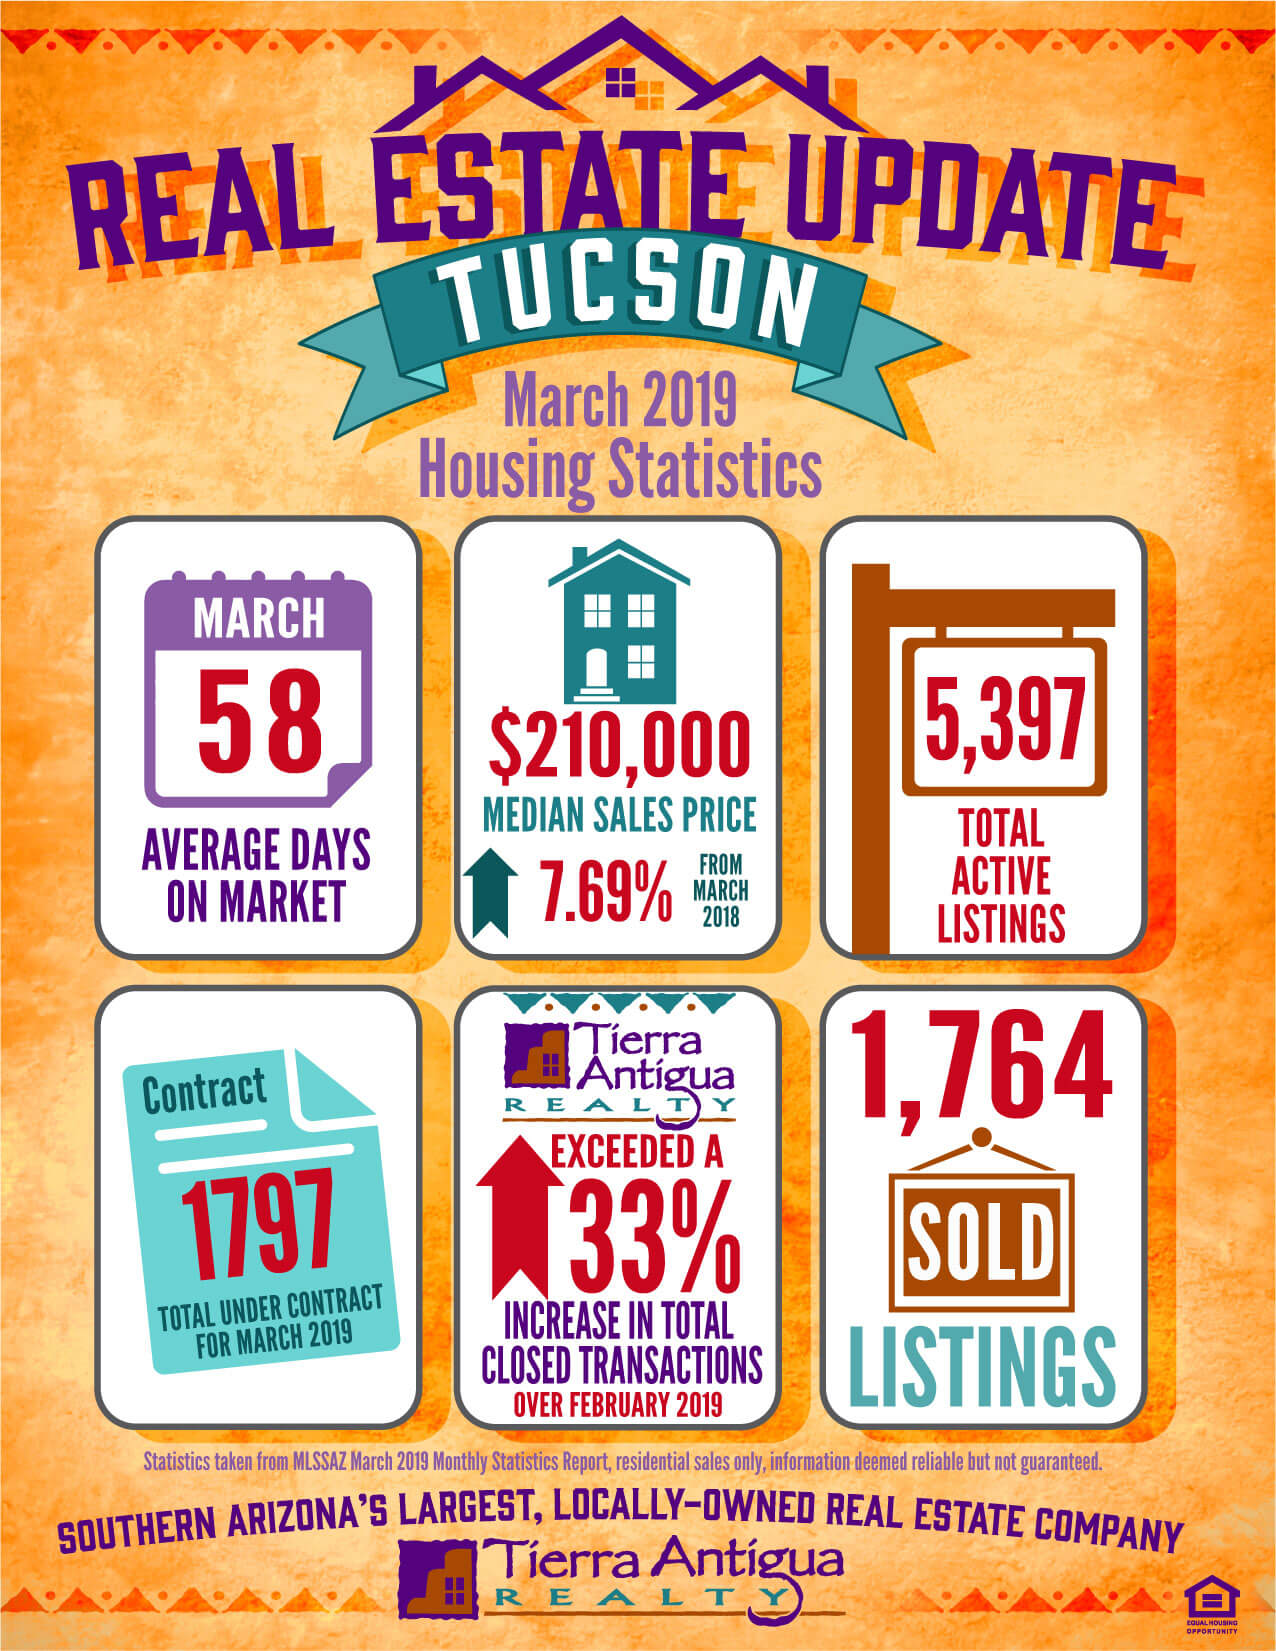 Tucson Real Estate Update March 2019